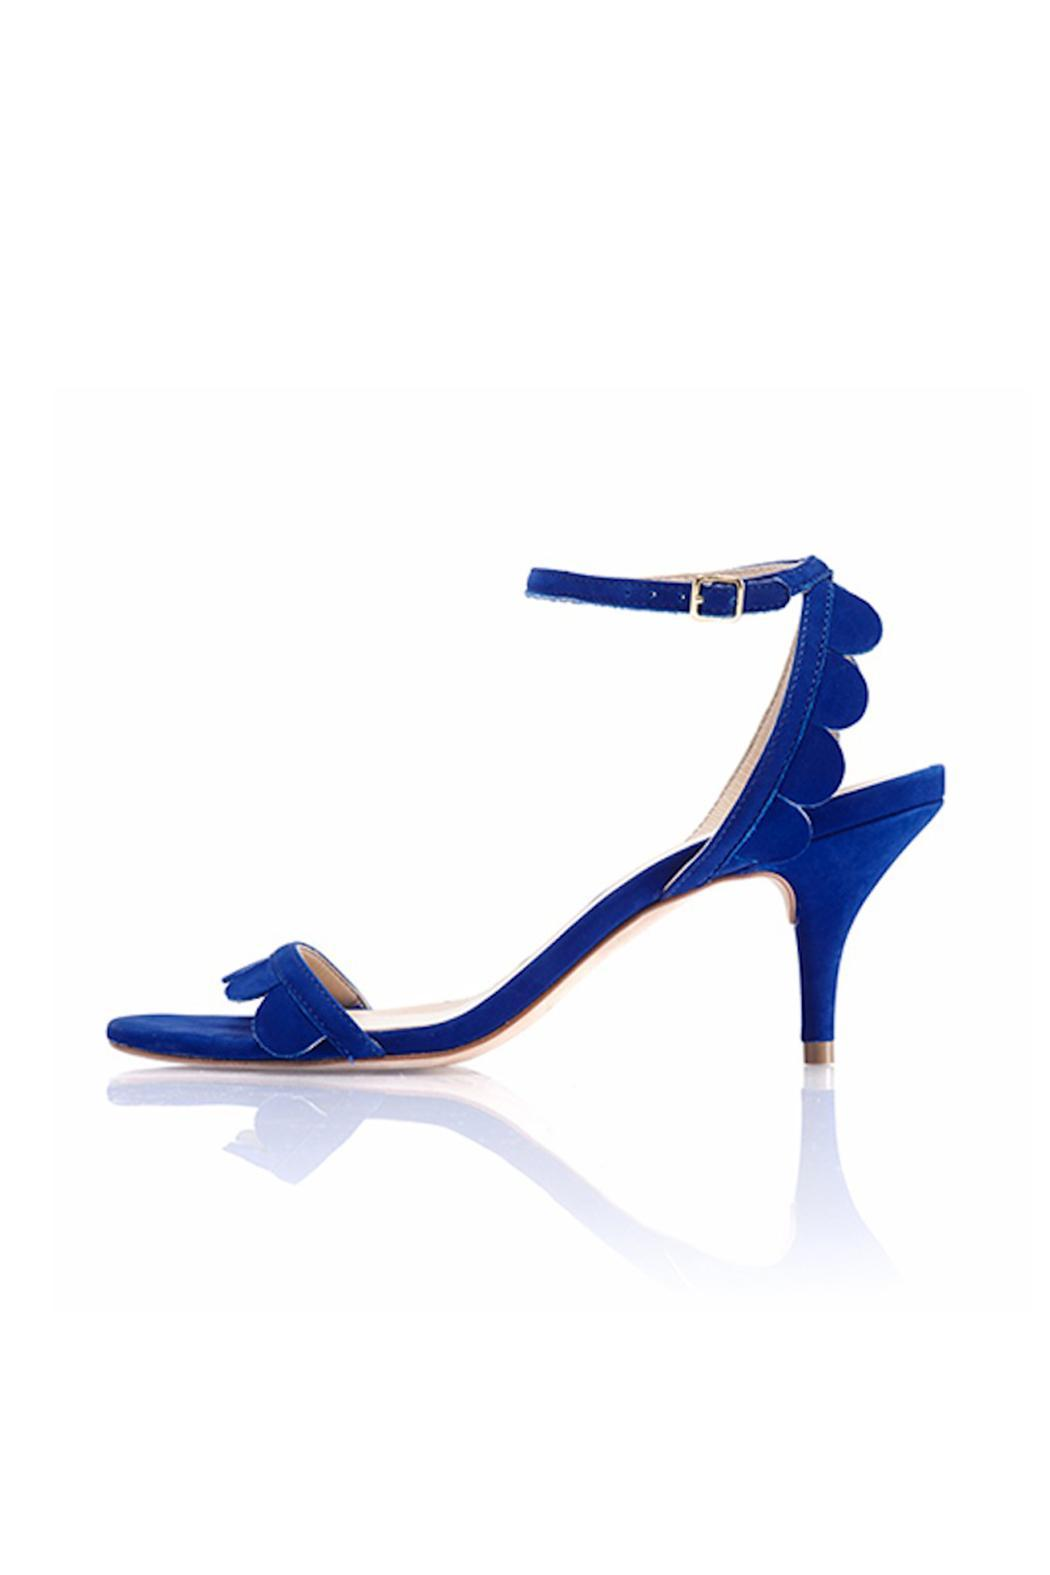 Loeffler Randall Lillit In Blue - Front Cropped Image